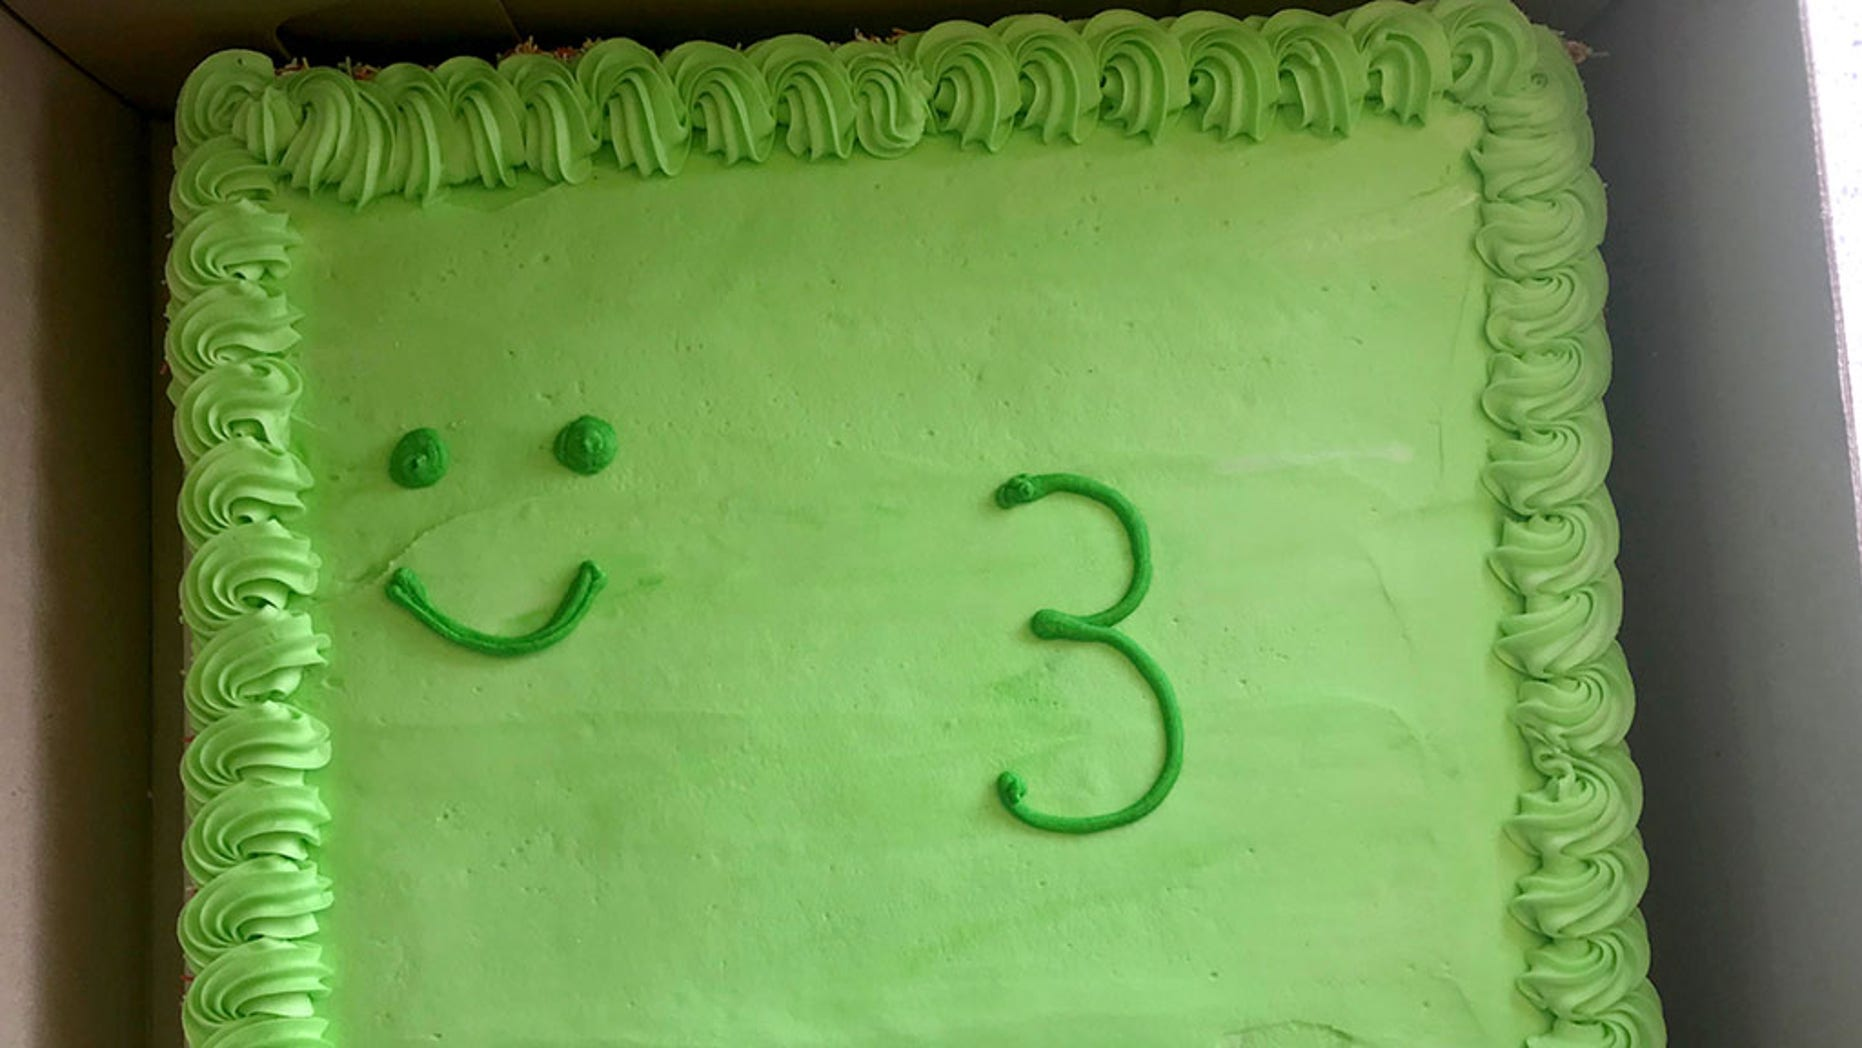 They Paid For A High End Frog Birthday Cake Their 3 Yr Old And Got This